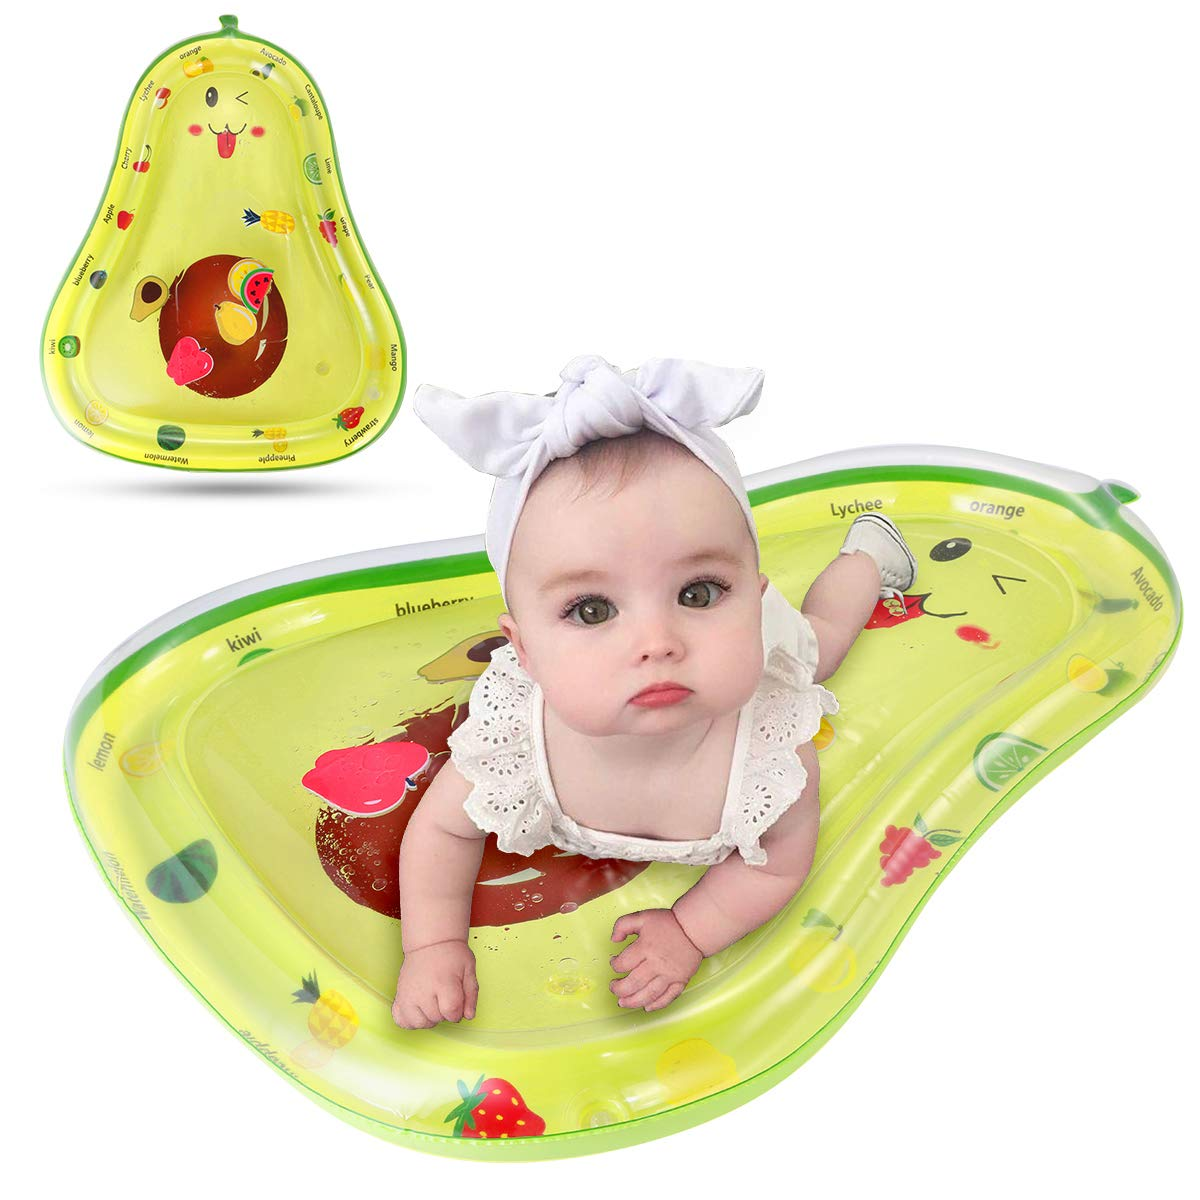 ROSEBEAR Baby Tummy Time Infant Water Mat, Activity Center Avocado Shape Inflatable Play Mat Toy with 6 Floating Toys